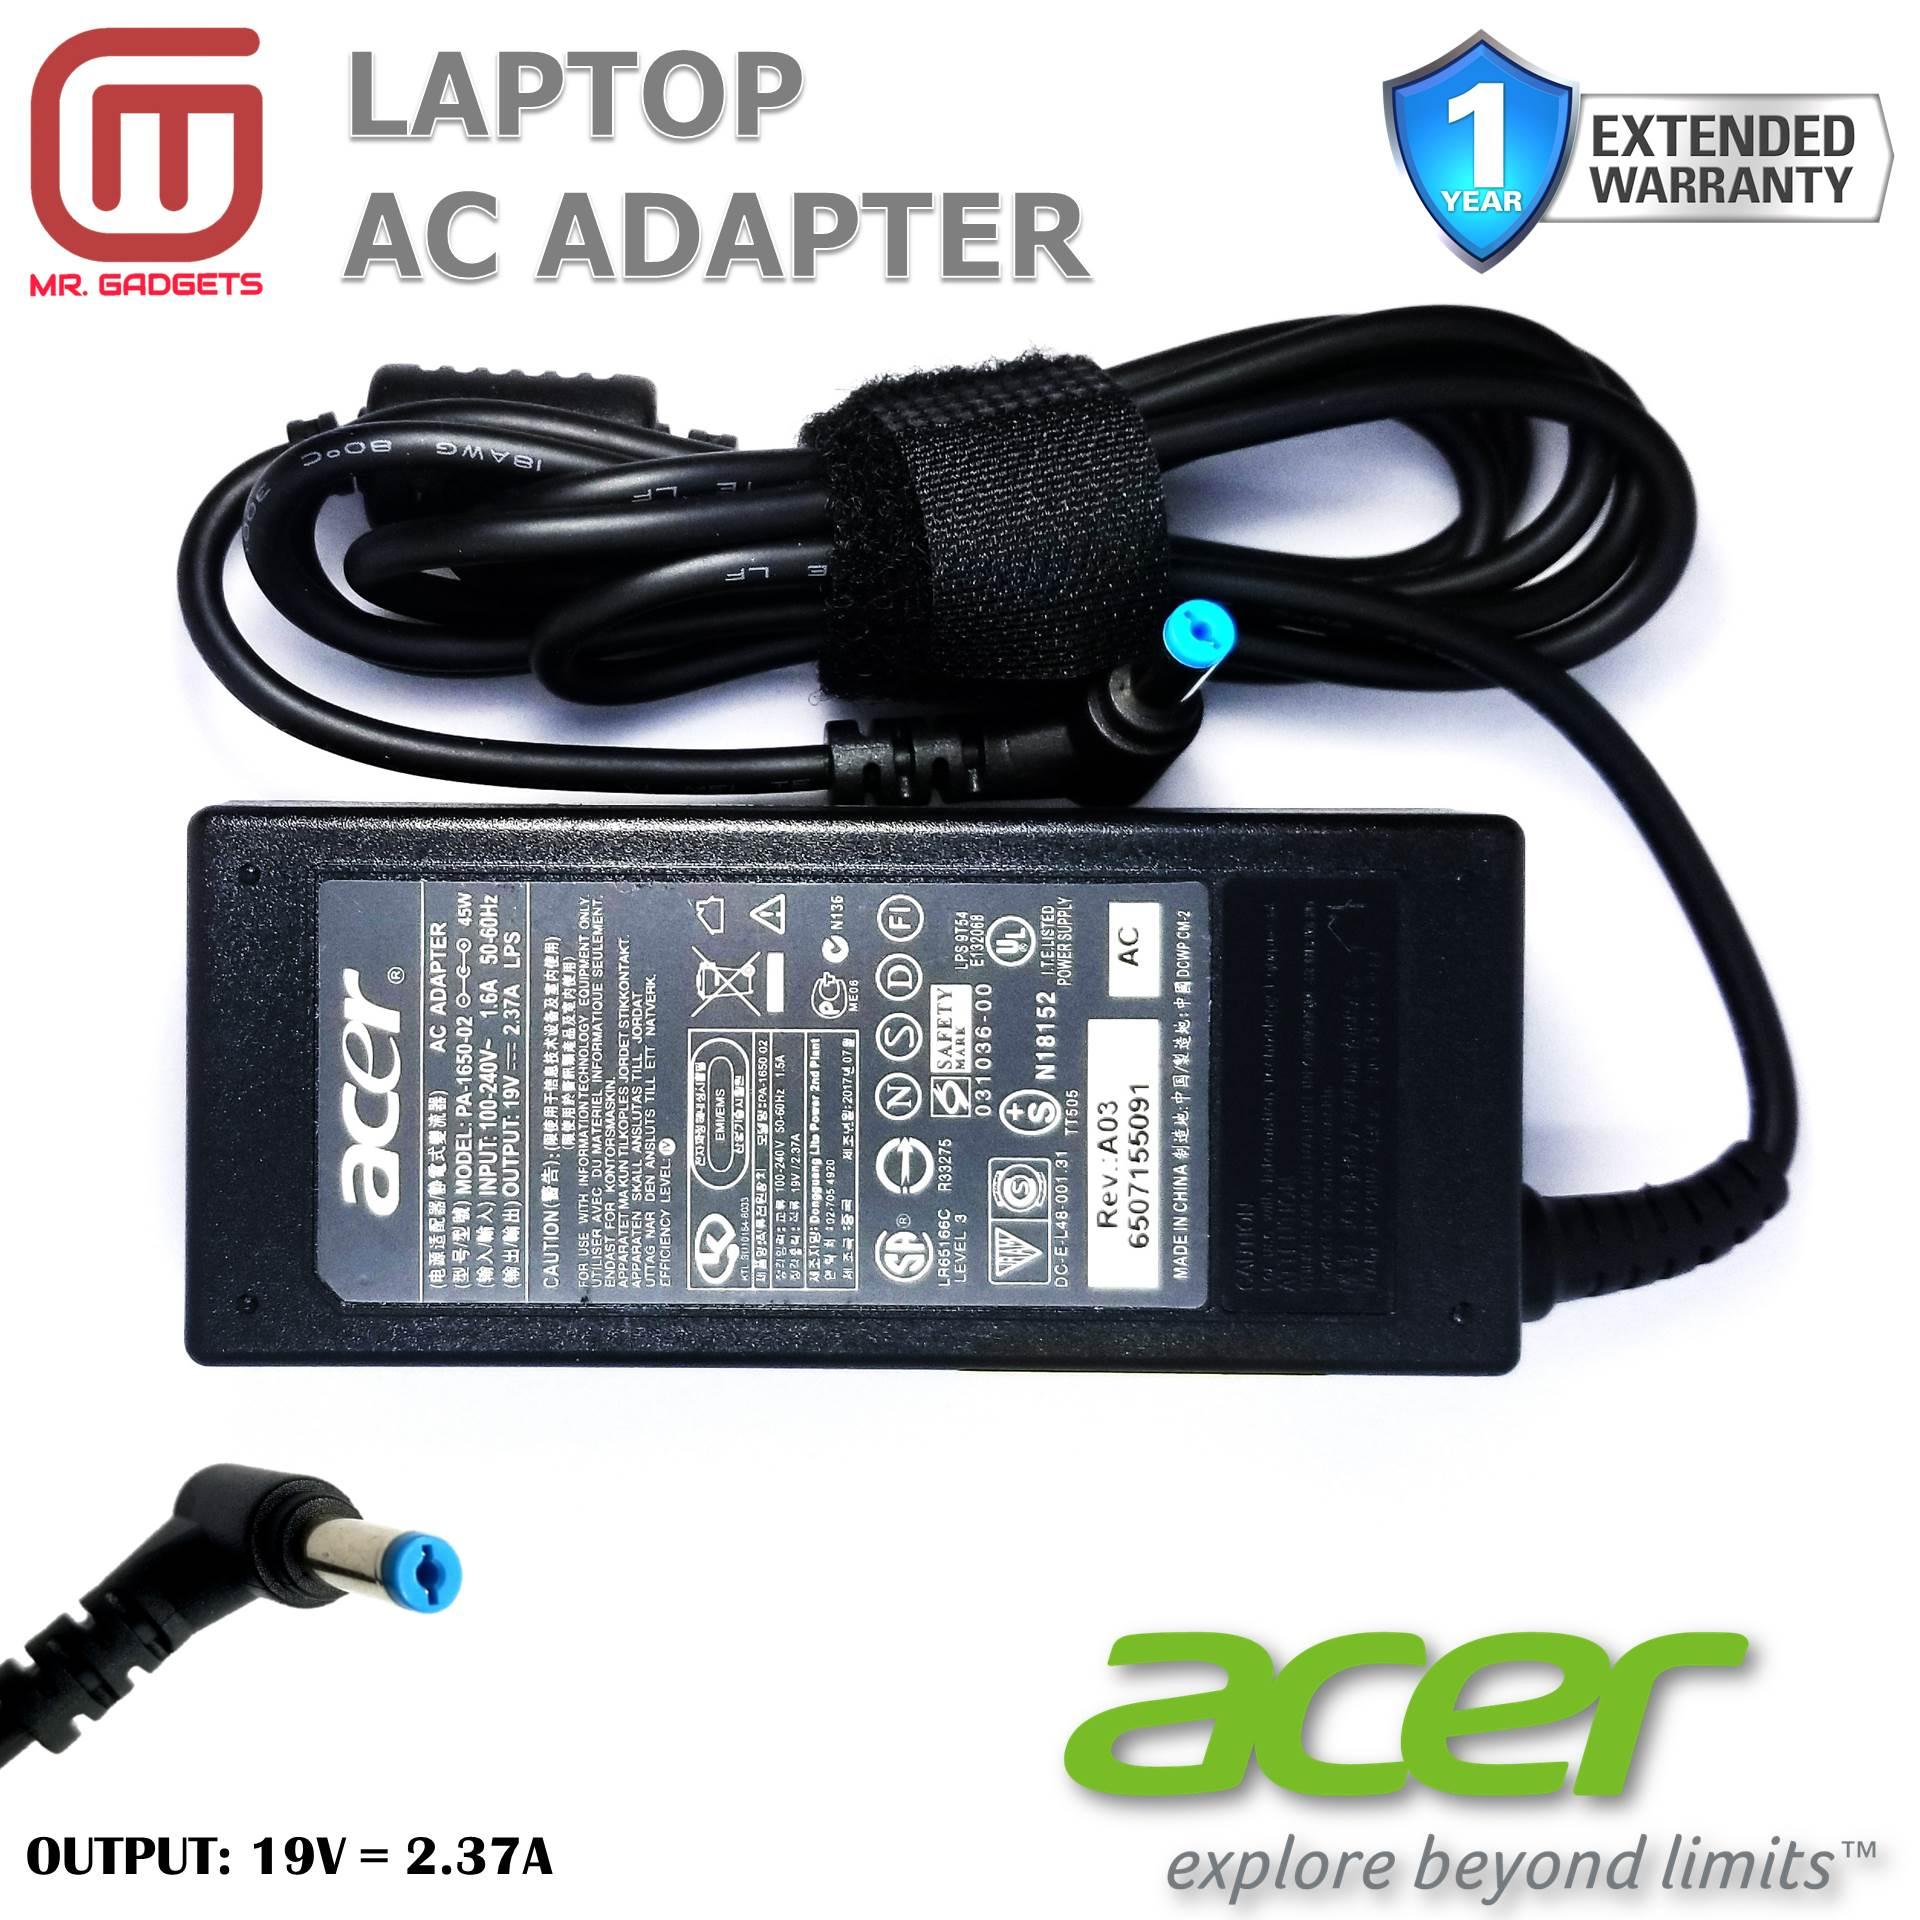 Sell Acer Aspire Es14 Cheapest Best Quality Ph Store Keyboard 4741 4743 4745 4750 4752 4810 4810t Php 529